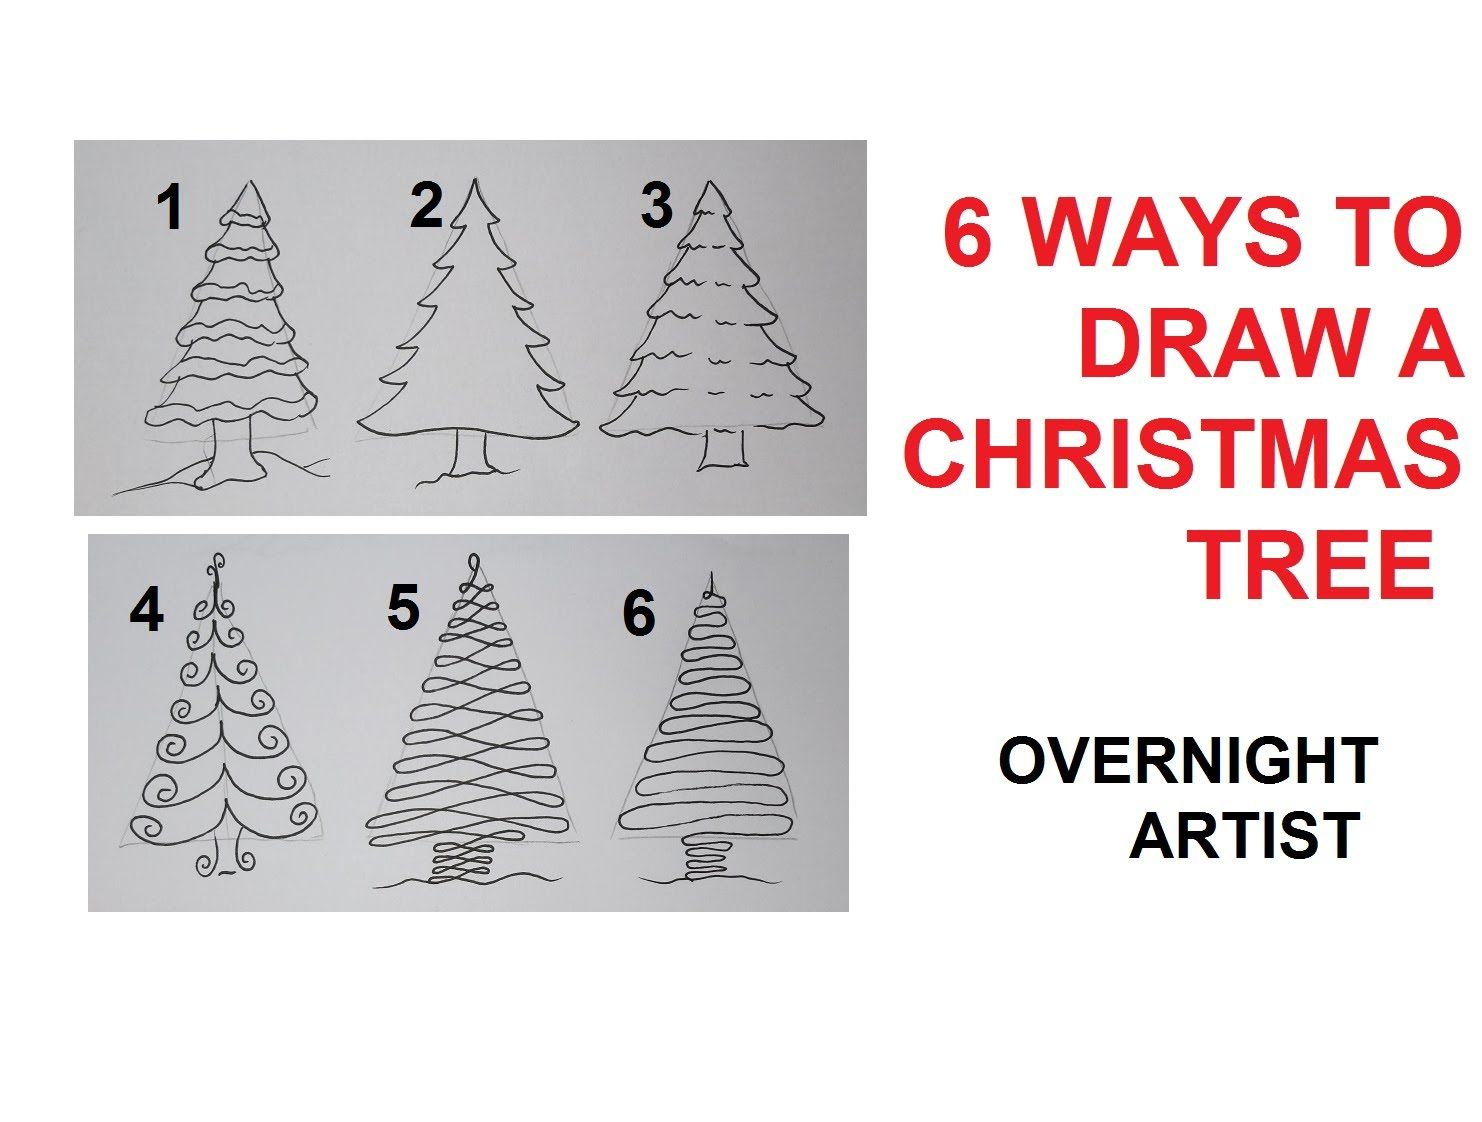 How To Draw Christmas Trees 6 Easy Ways To Draw Xmas Tree Christmas Tree Drawing Christmas Tree Drawing Easy Christmas Tree Art